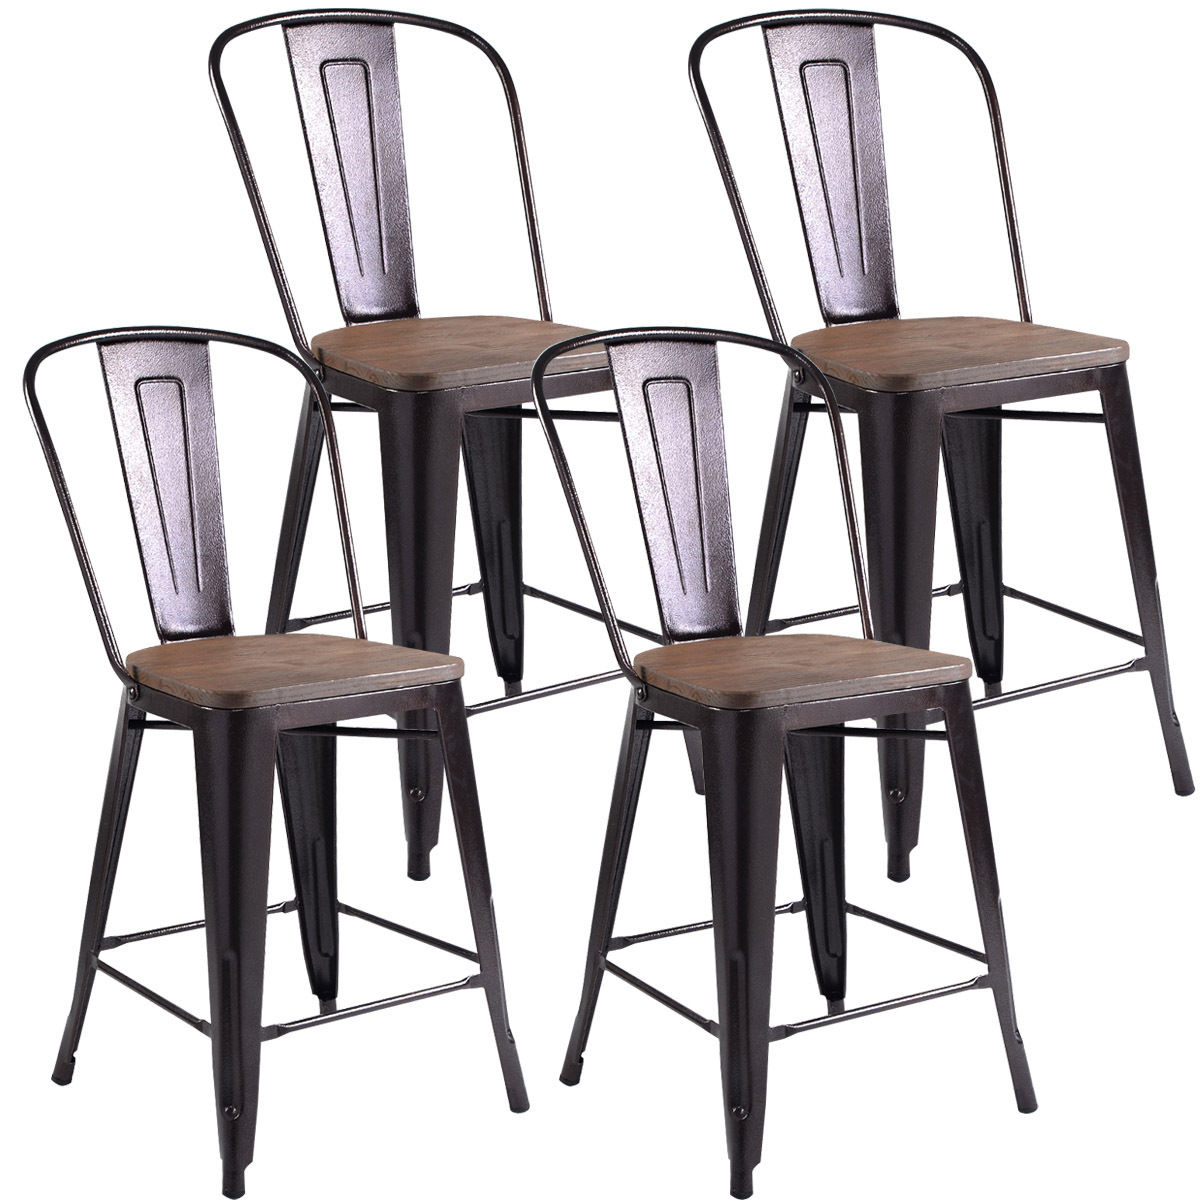 Costway Copper Set of 4 Metal Wood Counter Stool Kitchen